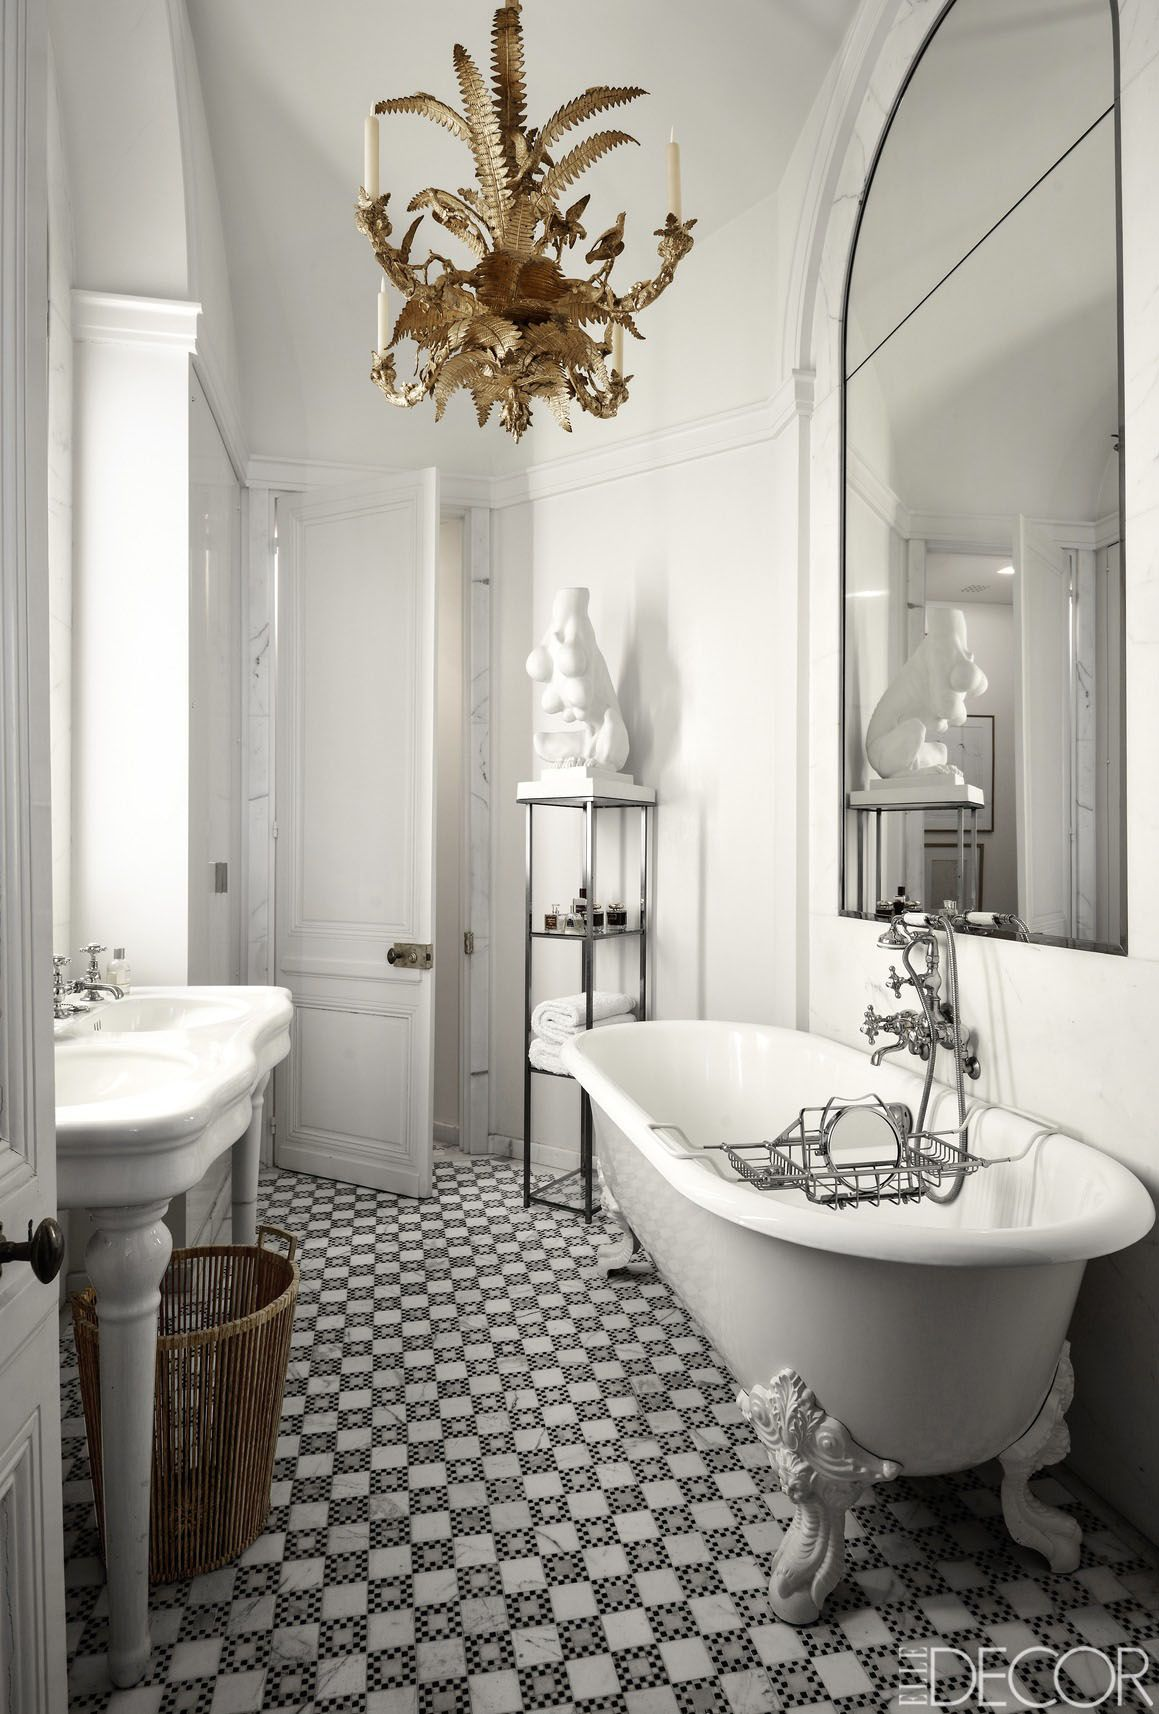 Bathroom ideas black and white - Bathroom Ideas Black And White 2